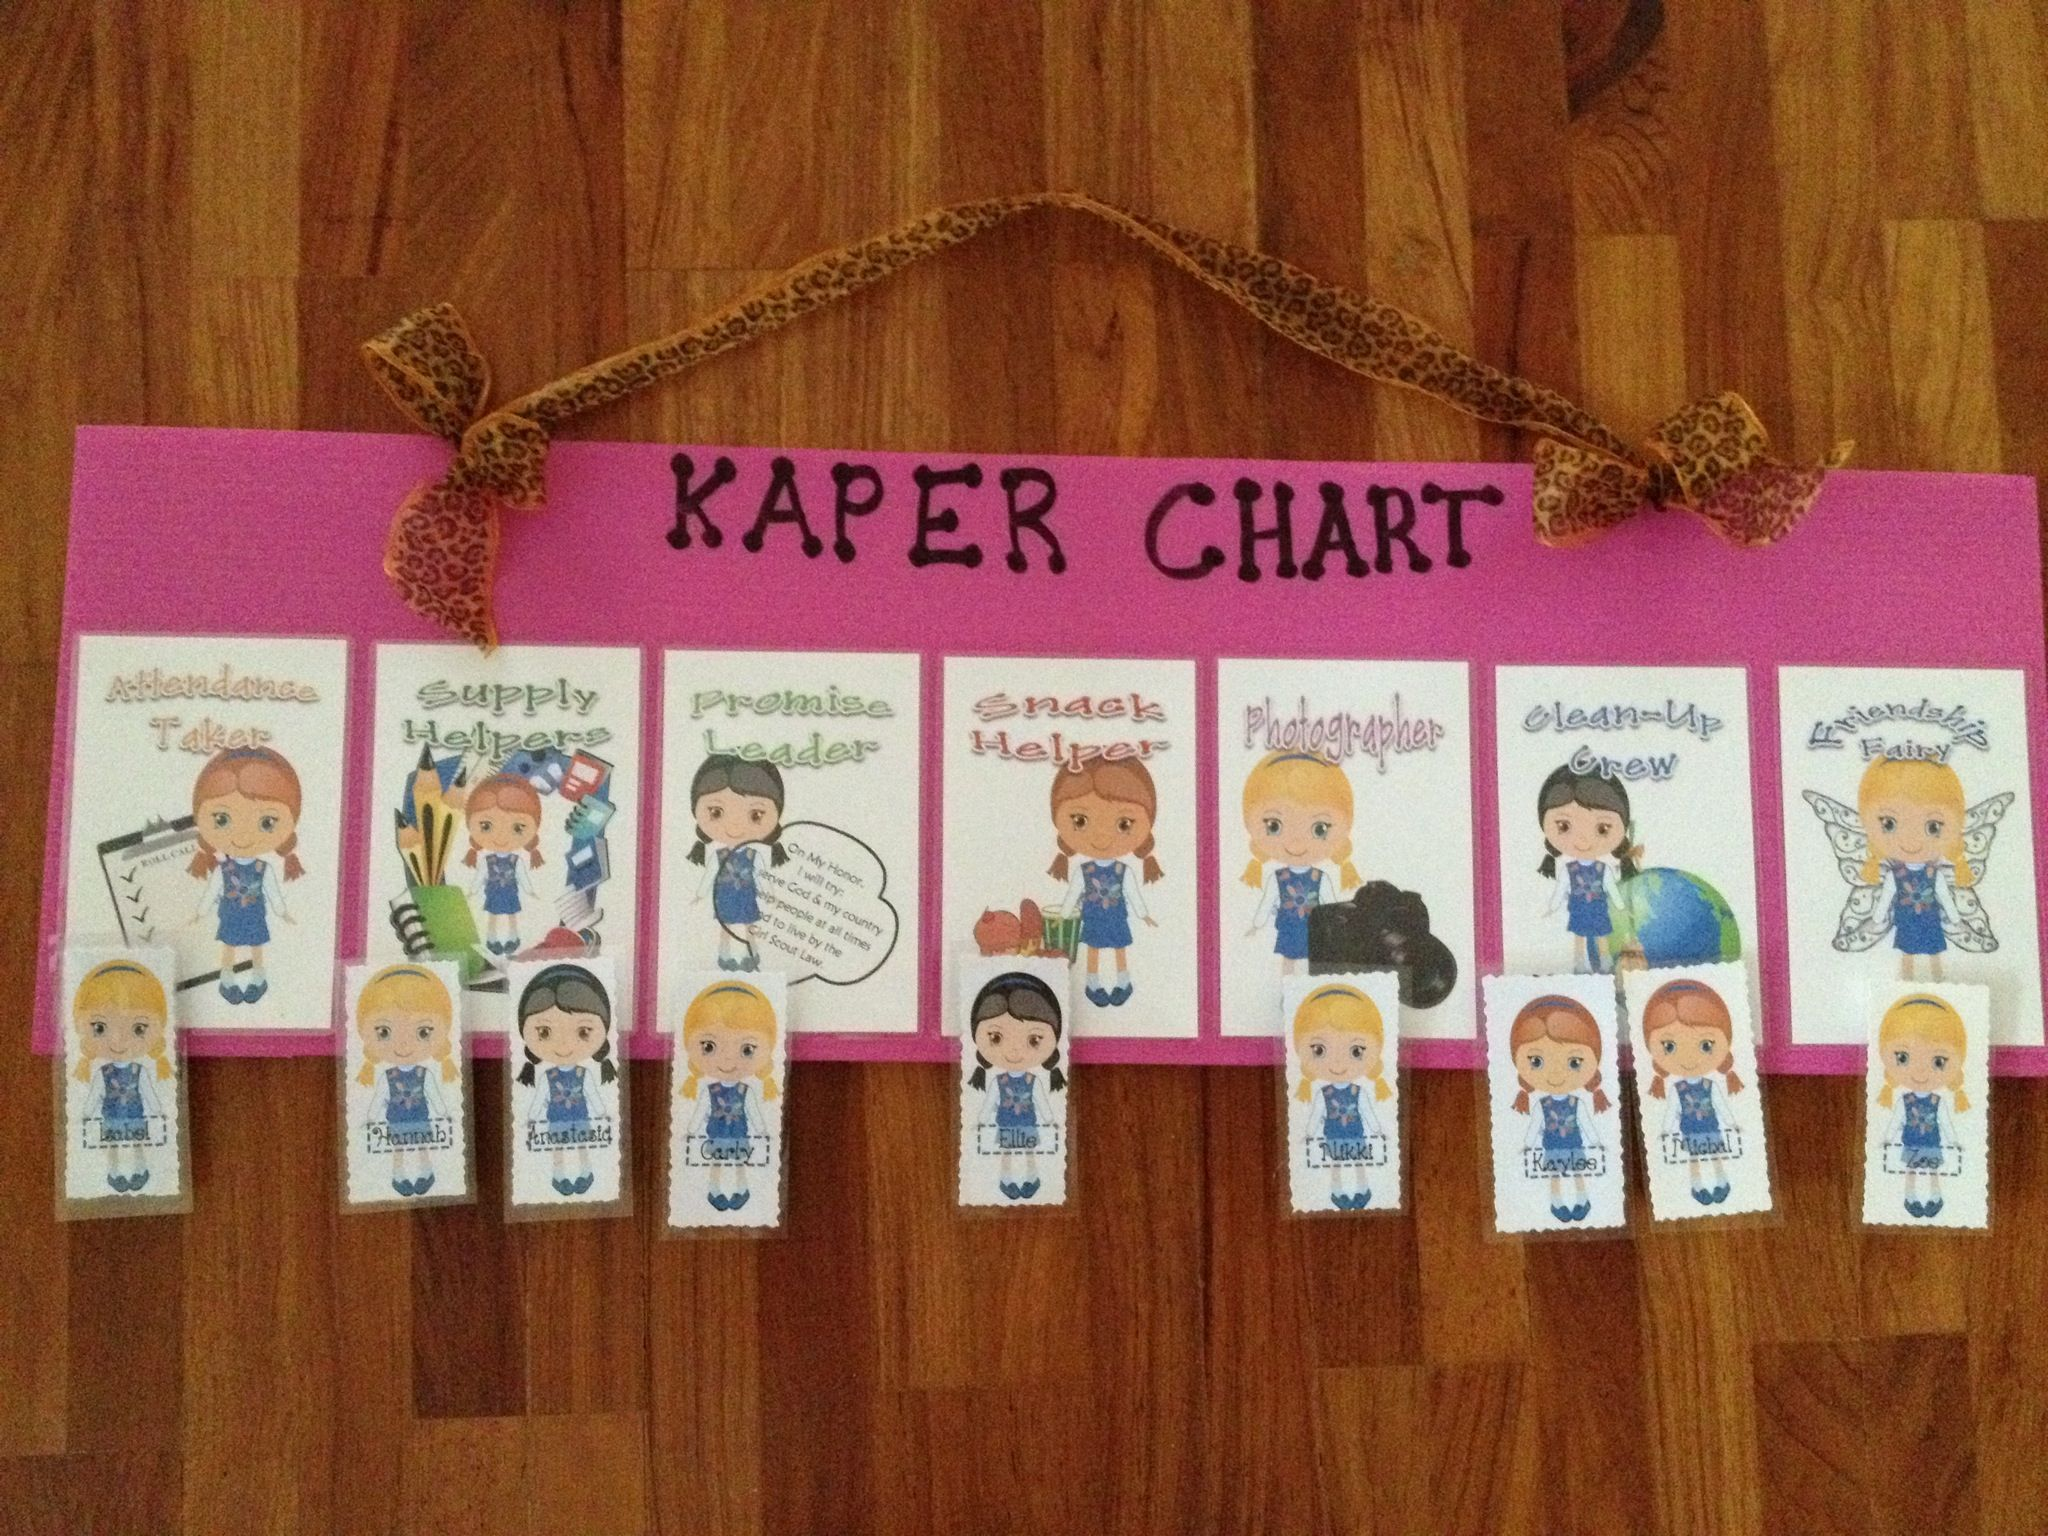 Daisy Kaper Chart Girl Scout Daisy Brownie Girl Scouts Girl Scouts